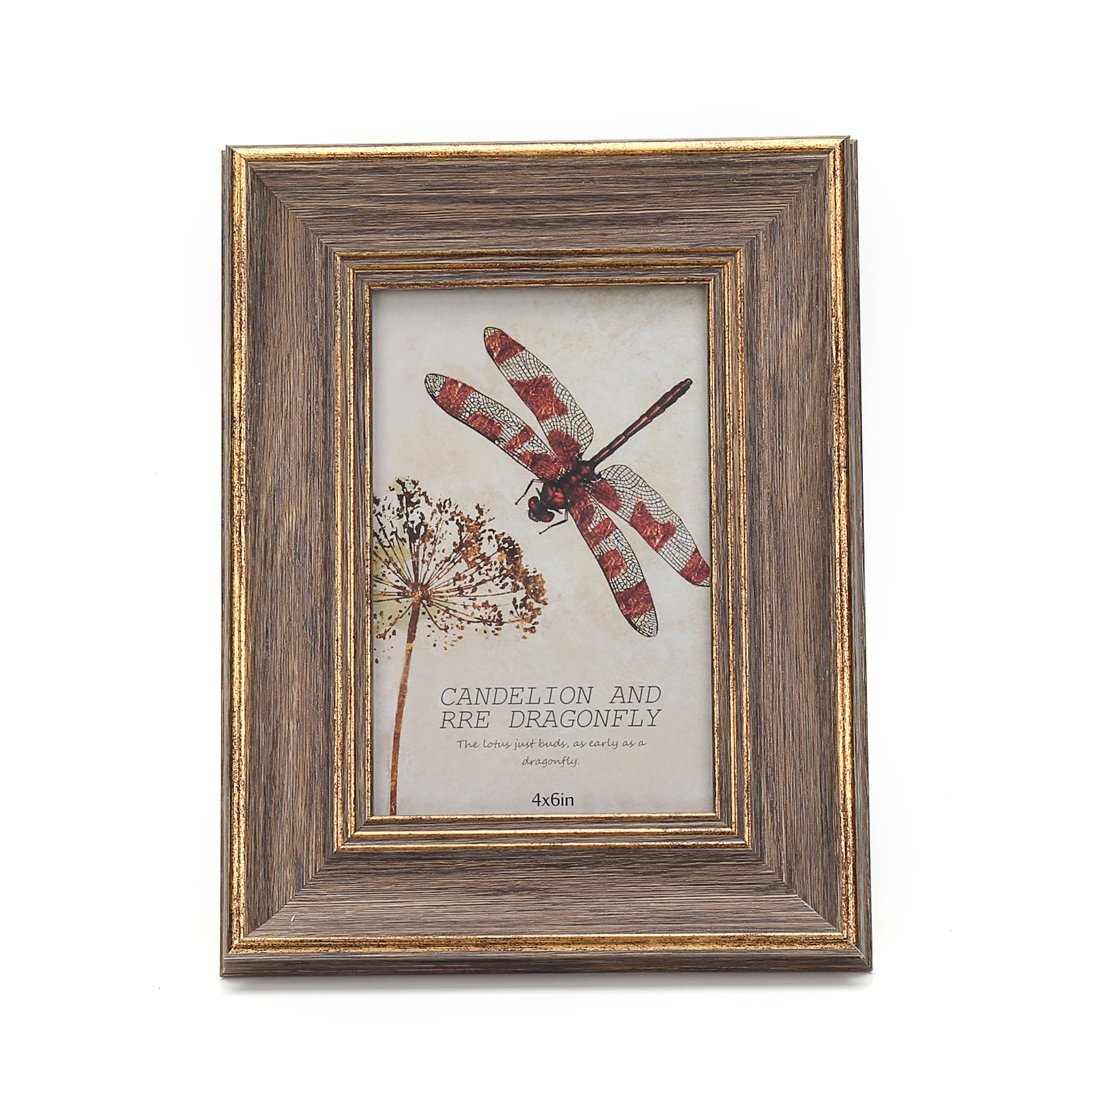 Vintage photo frames for decent design cool ideas for home 4x6 inches vintage feel rustic picture frame for tabletop or wall hanging with glass front jeuxipadfo Choice Image